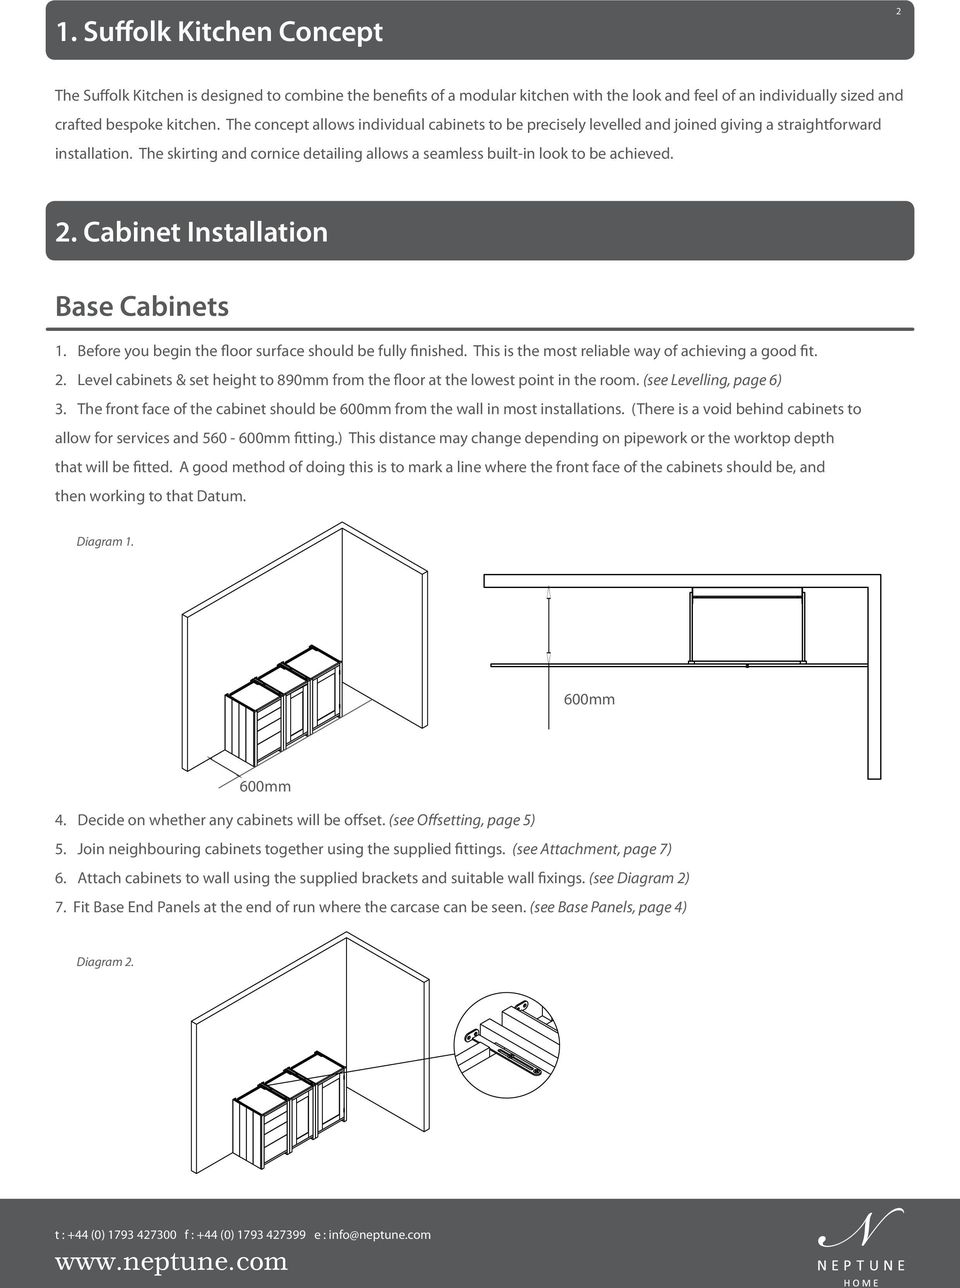 Cabinet Installation Base Cabinets 1. Before you begin the floor surface should be fully finished. This is the most reliable way of achieving a good fit. 2.